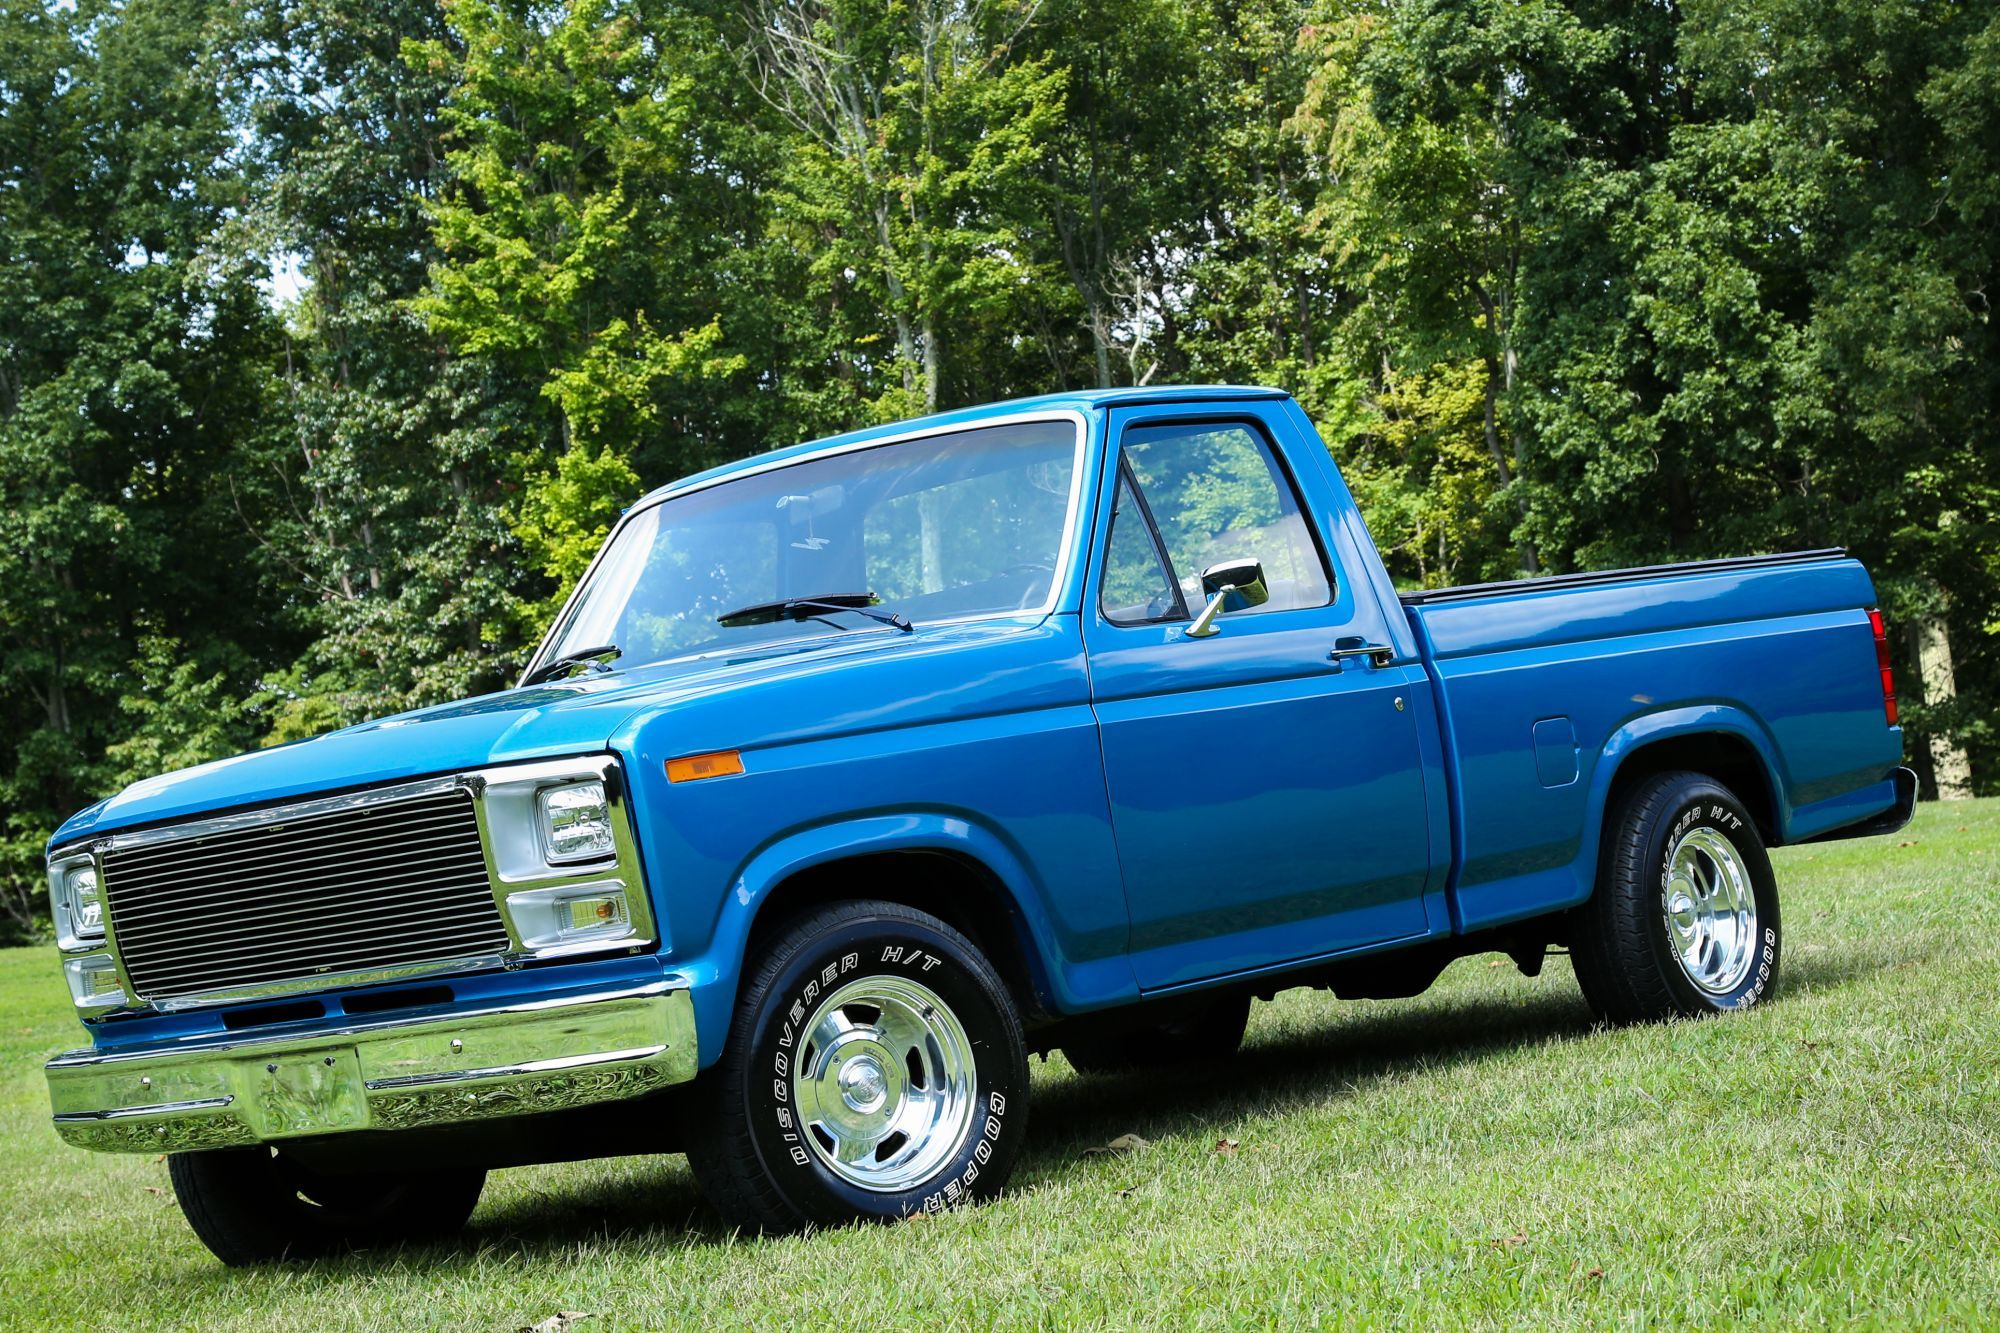 Show Em Current 80 86 Post Pic Ford Truck Enthusiasts Forums Ford Suv Trucks Ford Pickup